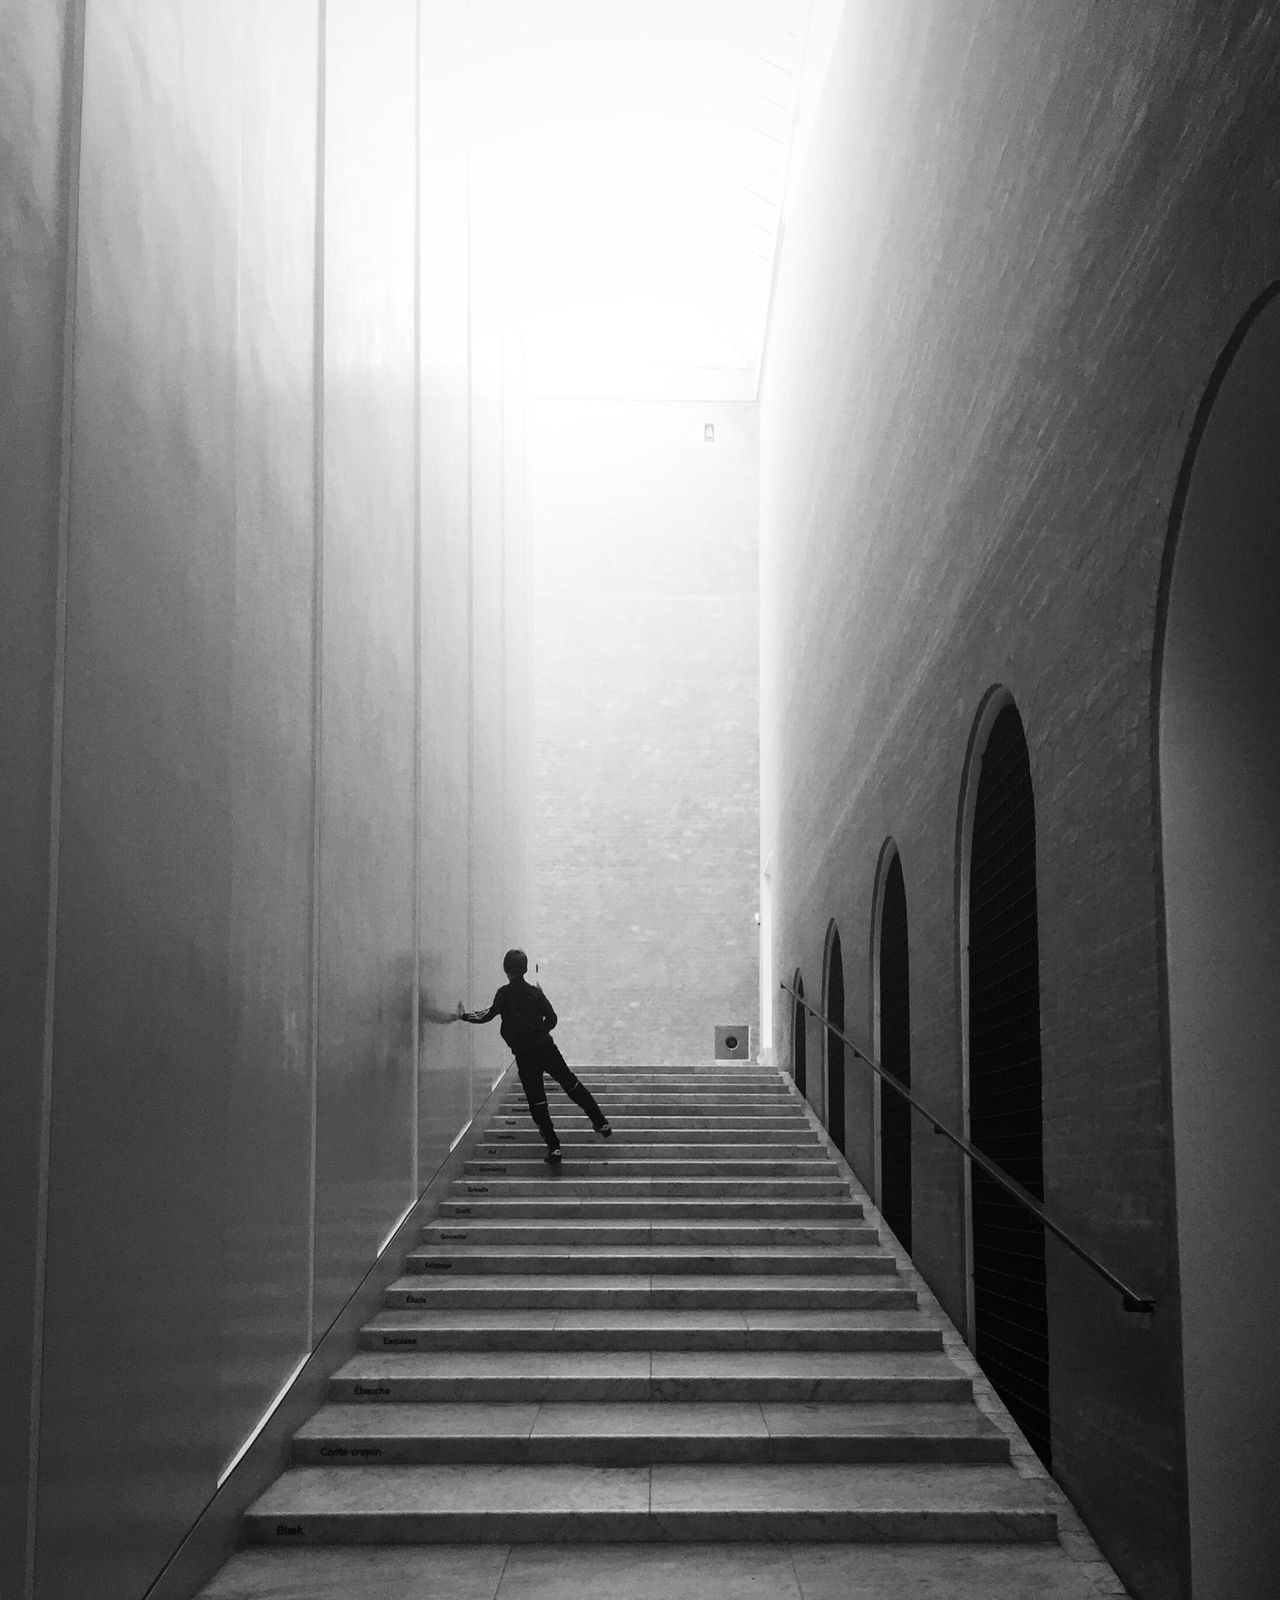 Steps And Staircases Silhouette EyeEm Best Shots - Black + White Bw_collection Monochrome Shootermag Black And White